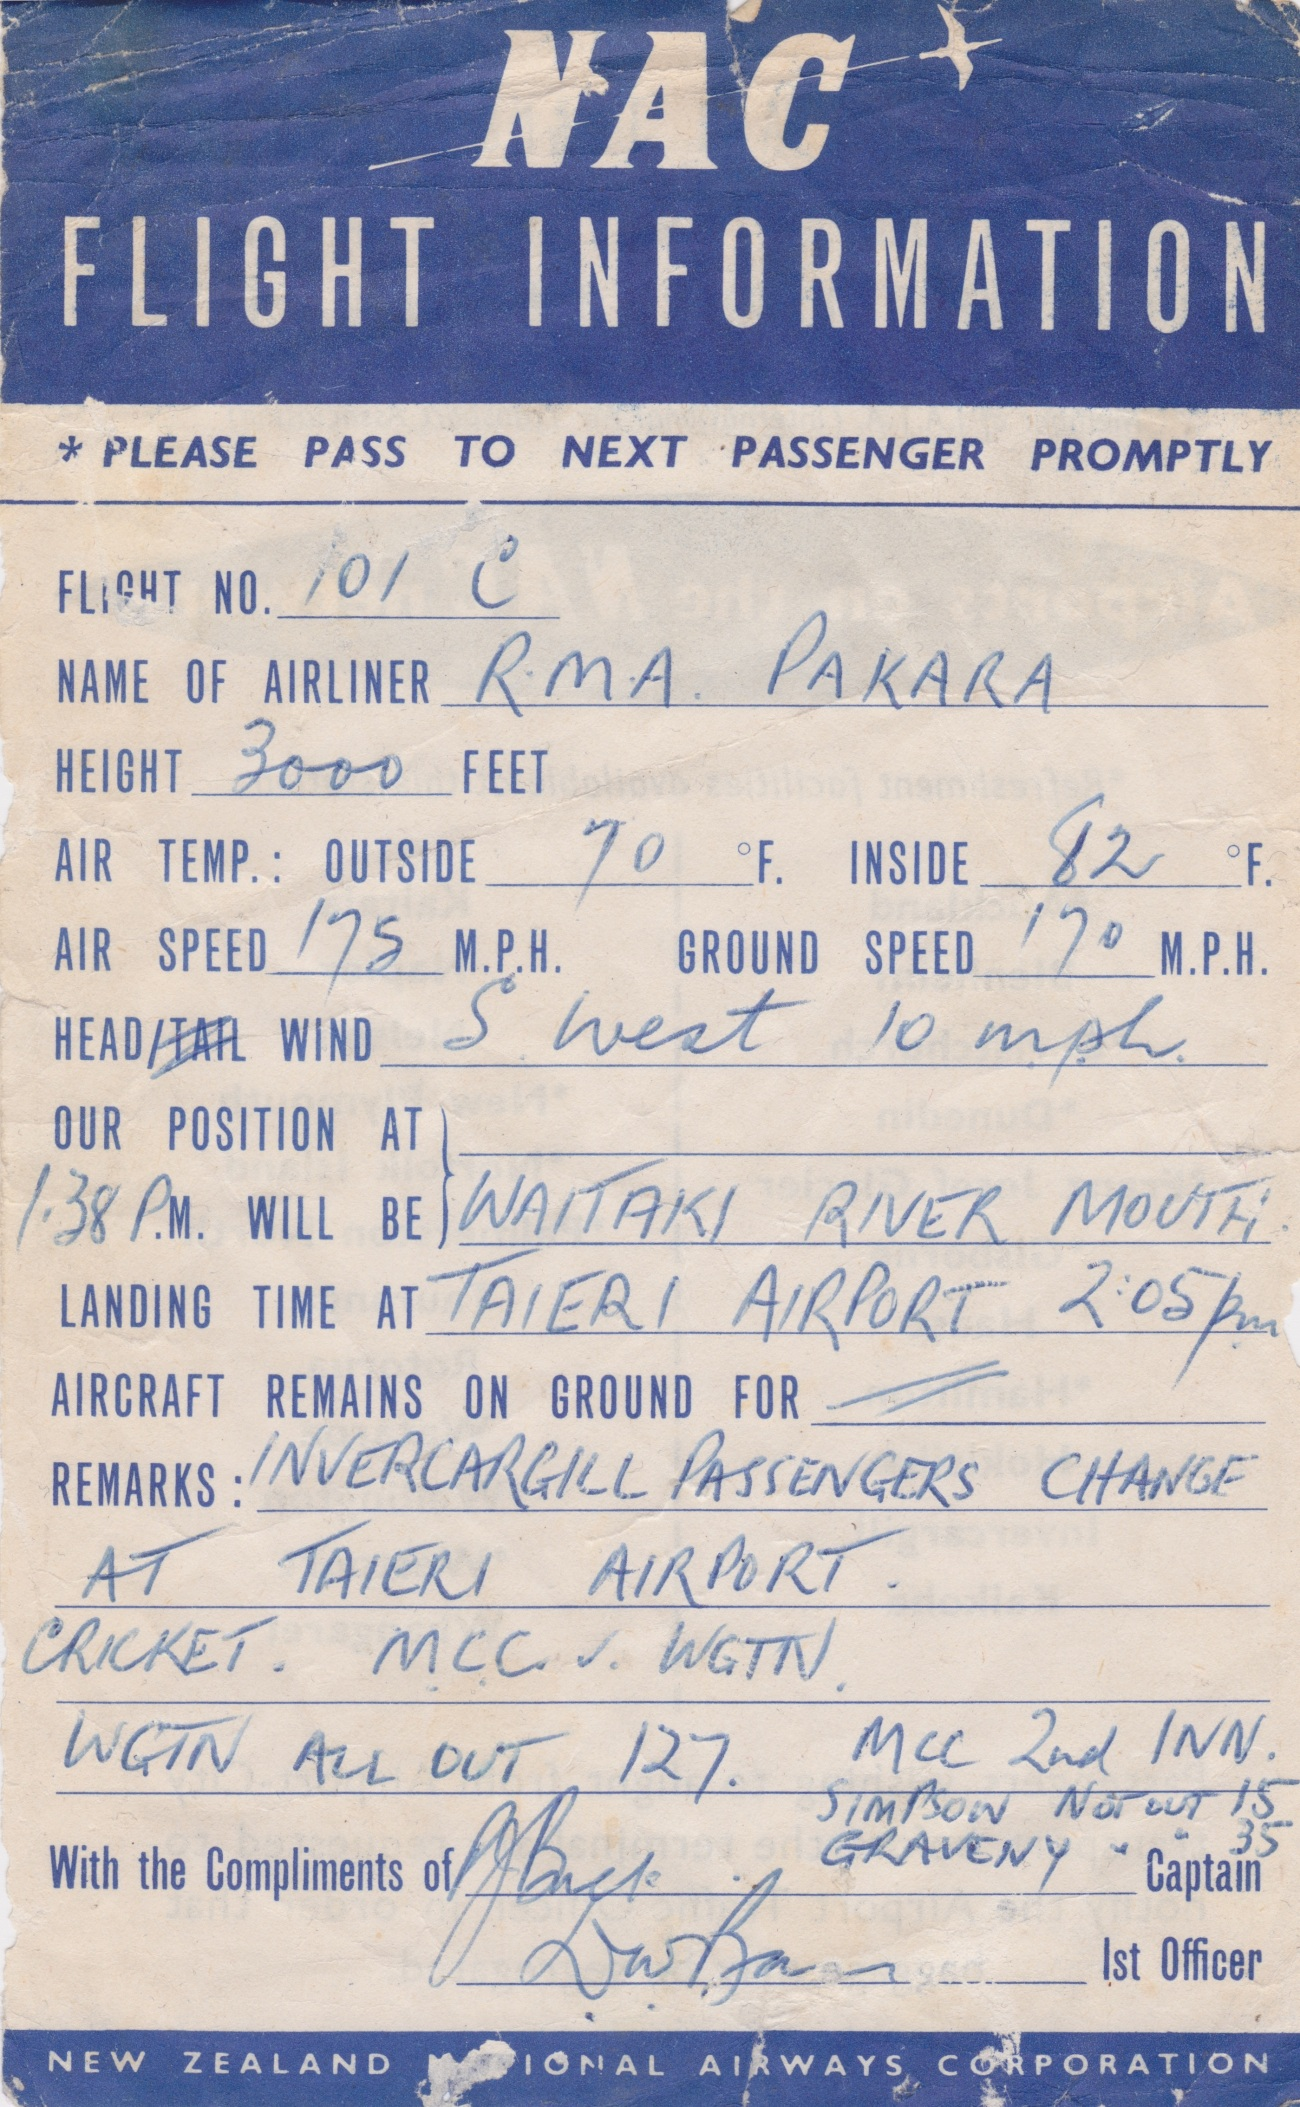 NAC Flight Information Sheet Lemuel Lyes Collection